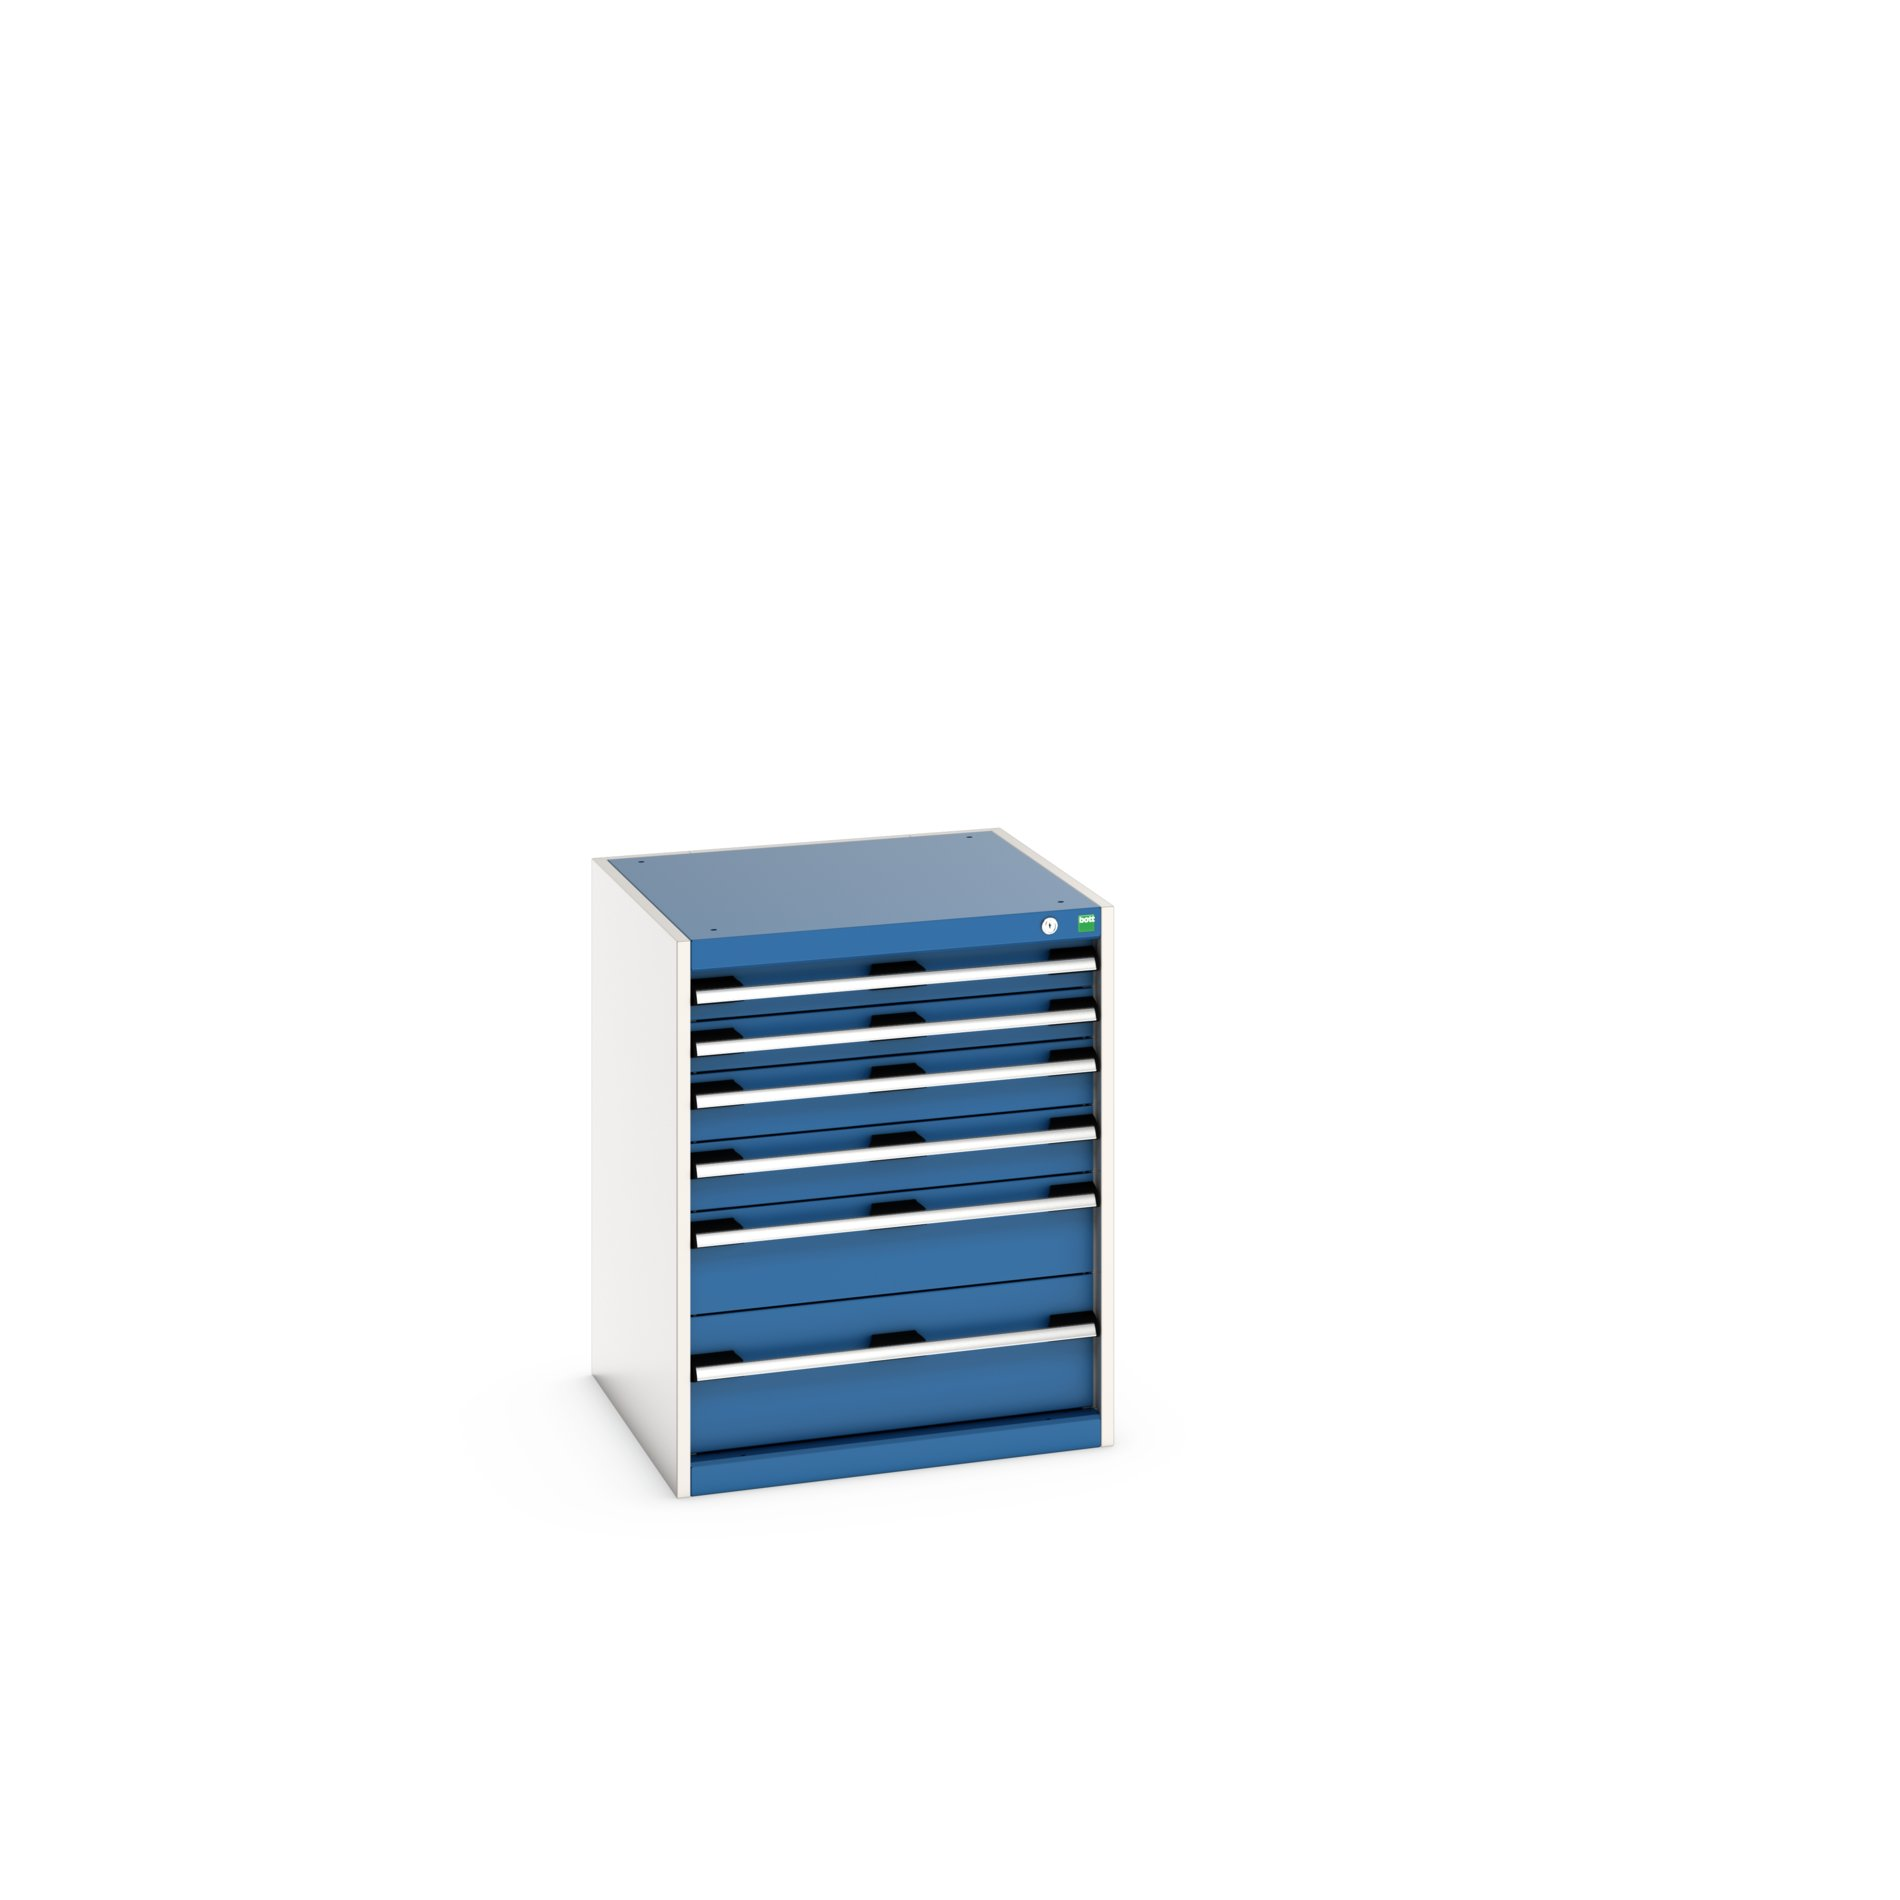 Bott Cubio Drawer Cabinet With 6 Drawers